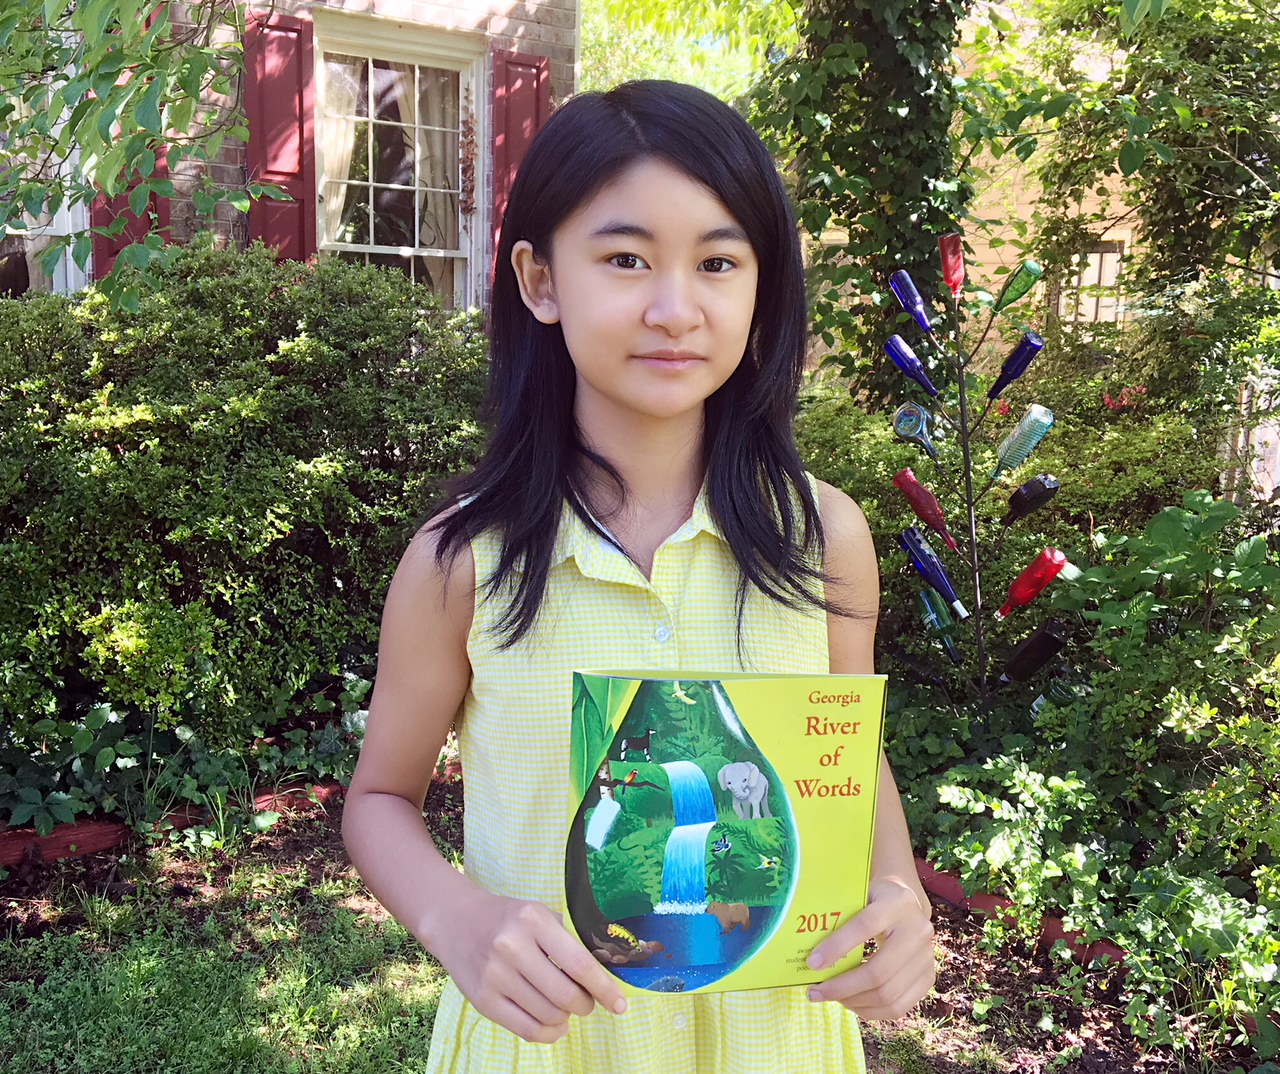 Nicole Li, a 14 year old student, stands outside, in front of a window and a row of large bushes. In her hands at waist level, she holds the Georgia River of Words 2017 anthology.